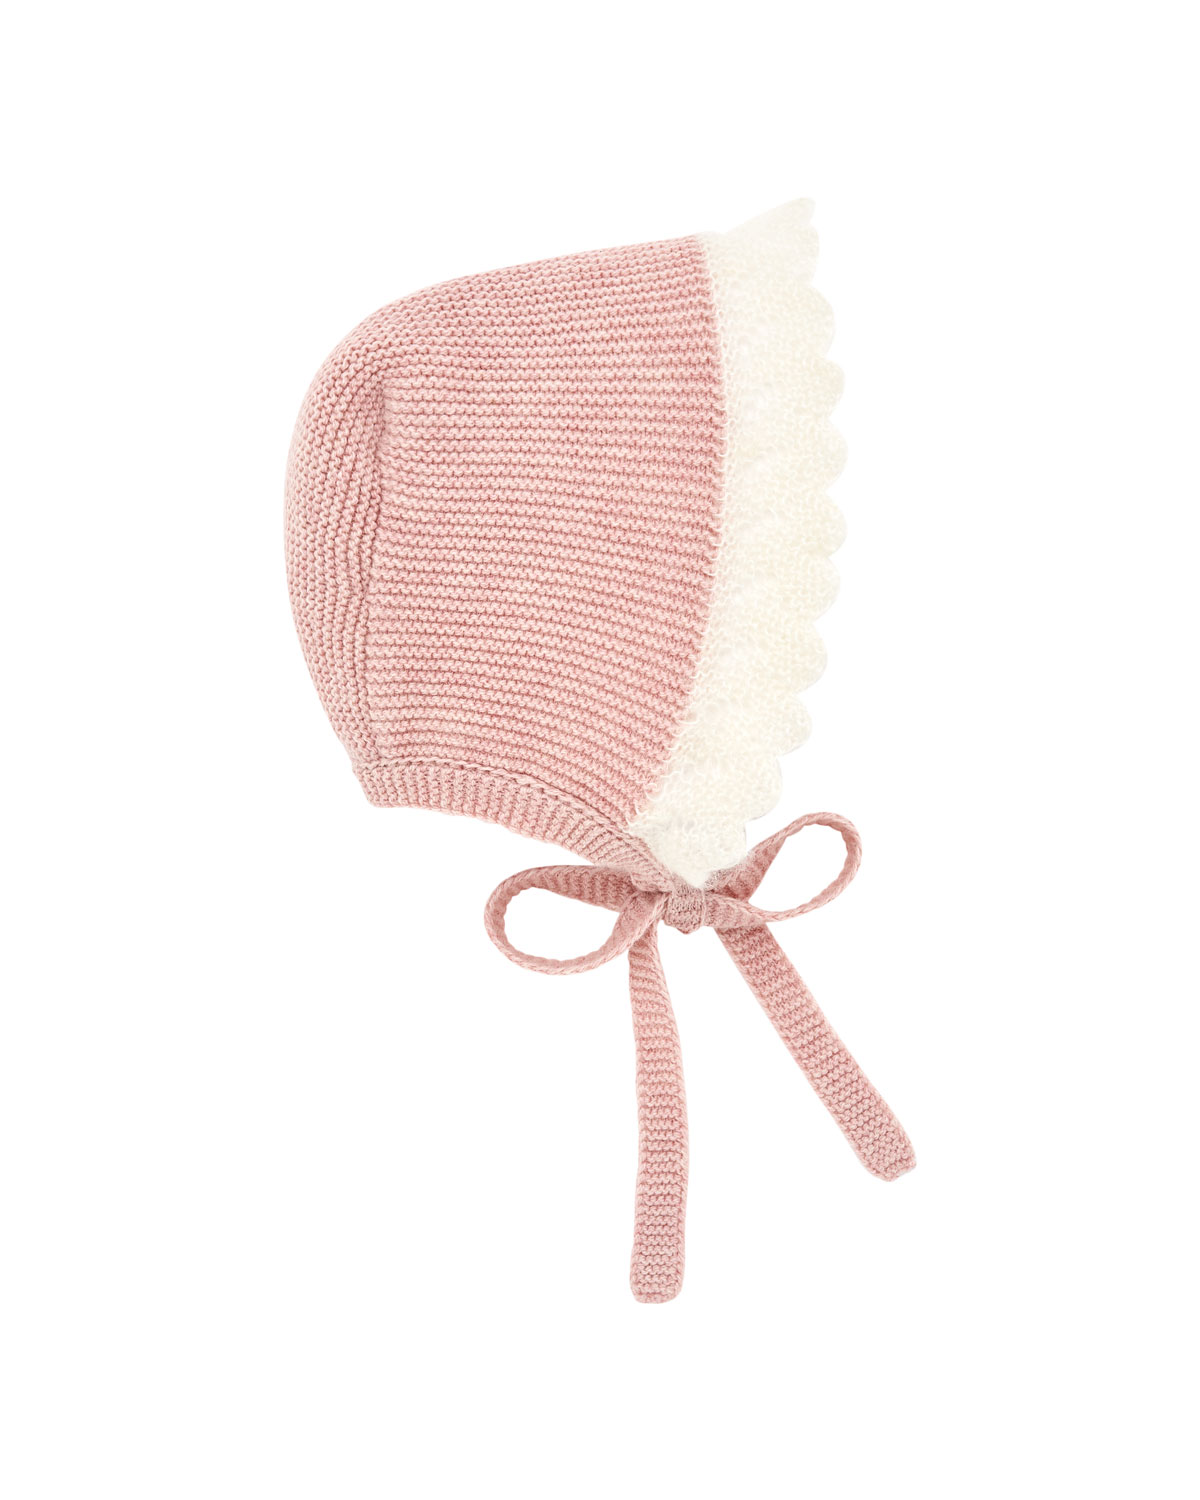 Two-Tone Knit Baby Bonnet with Mohair Trim